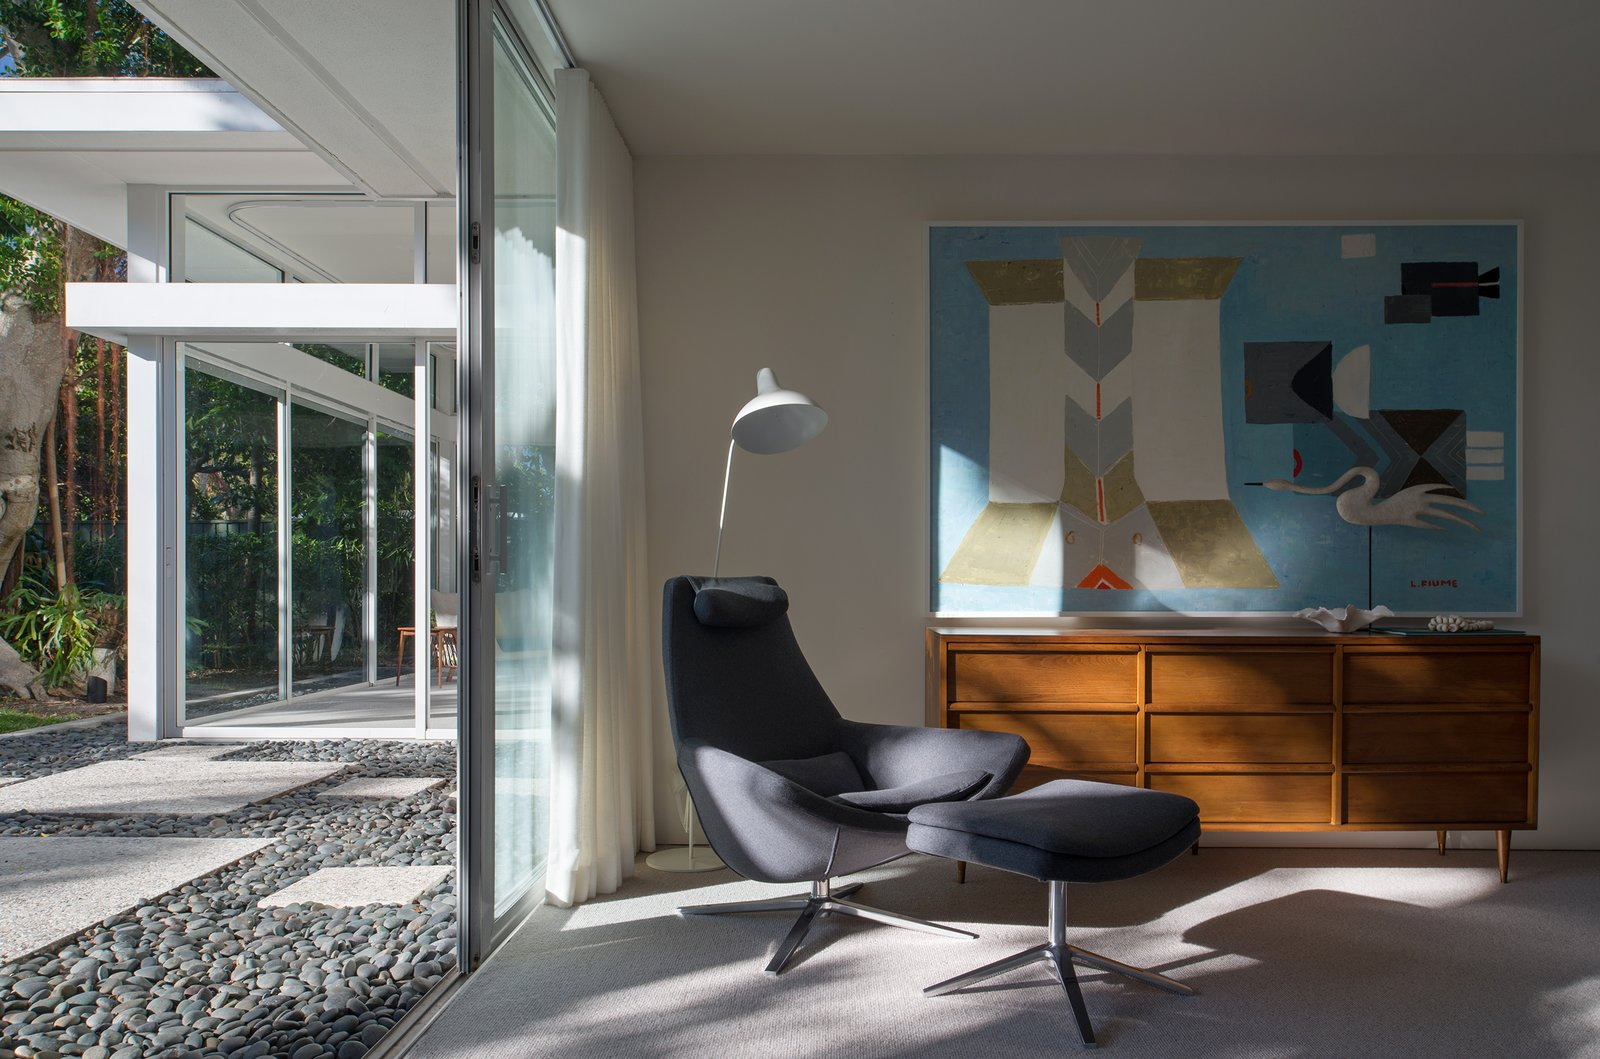 The architectural details of the home present dramatic shadows and highlights that evolve and dissolve throughout the day.  The Pavilion House by Seamus Payne